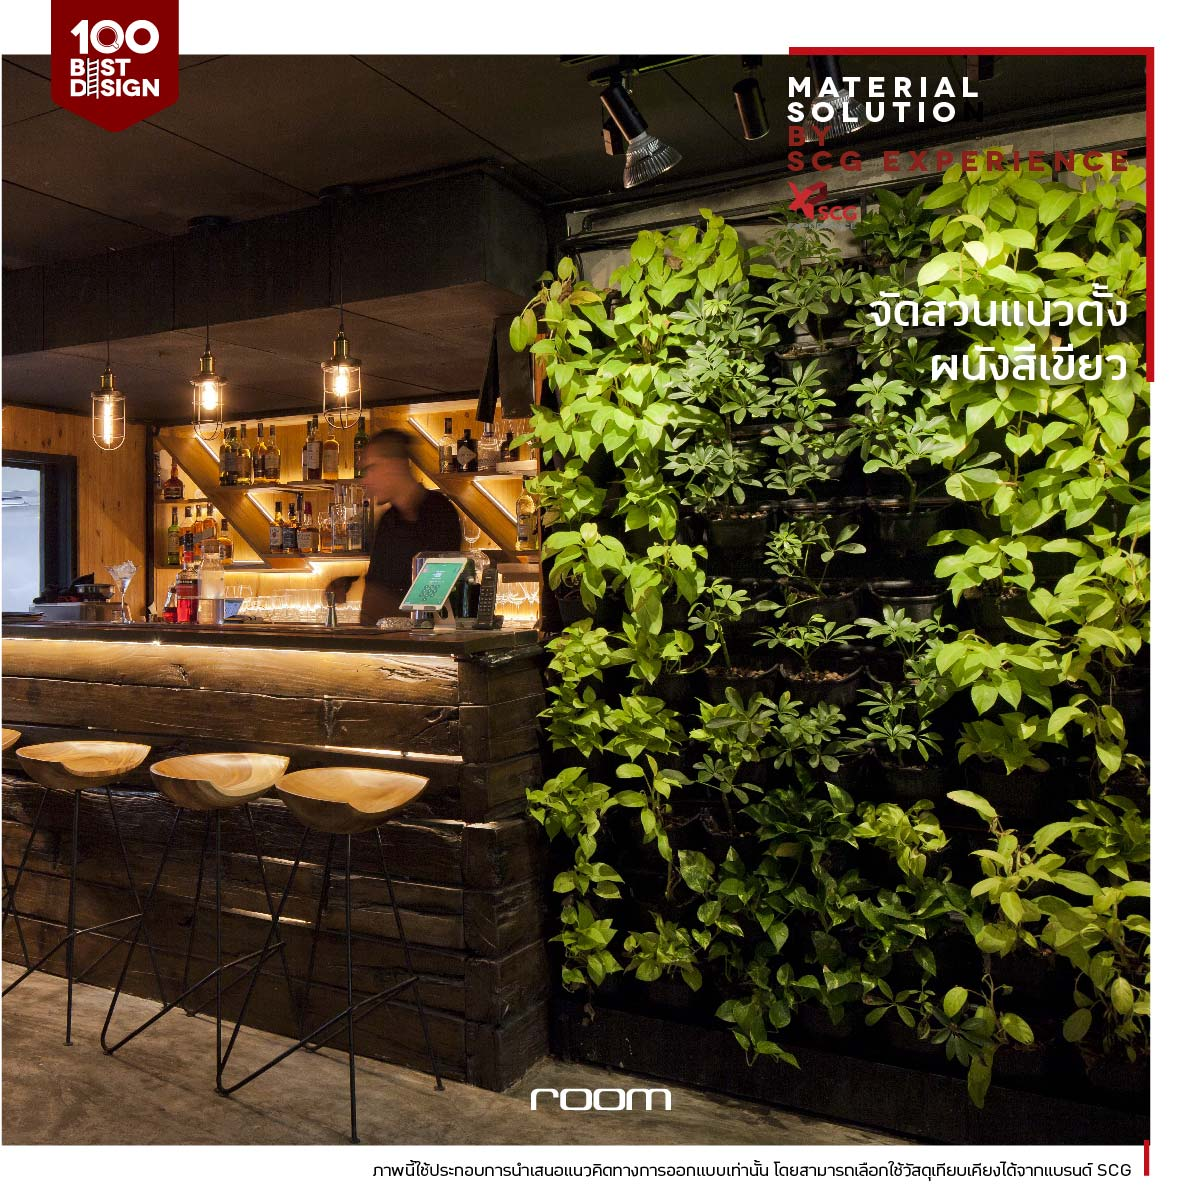 Verticle Garden decoration idea in the restaurant or cafe